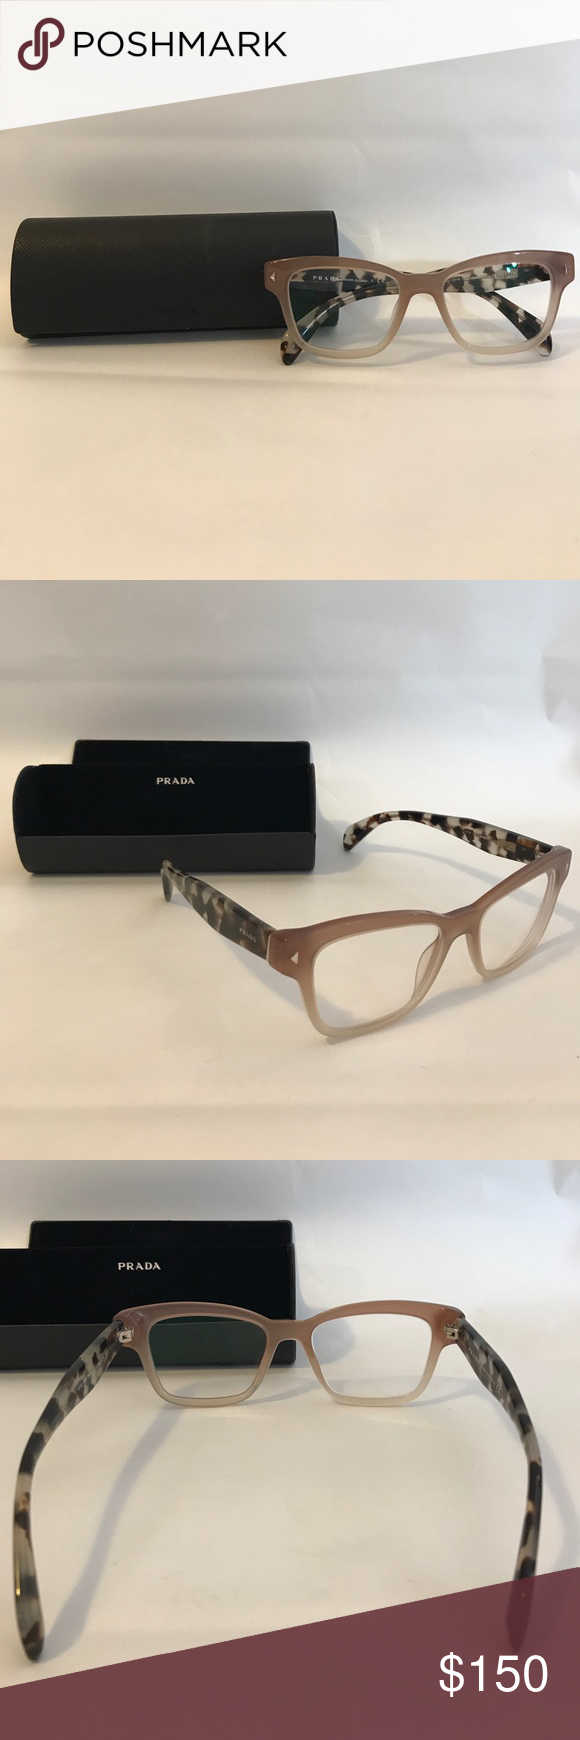 1e25855c7ef5 Prada glasses Brand new. The only thing is that it has prescription lens in  them for both eyes.